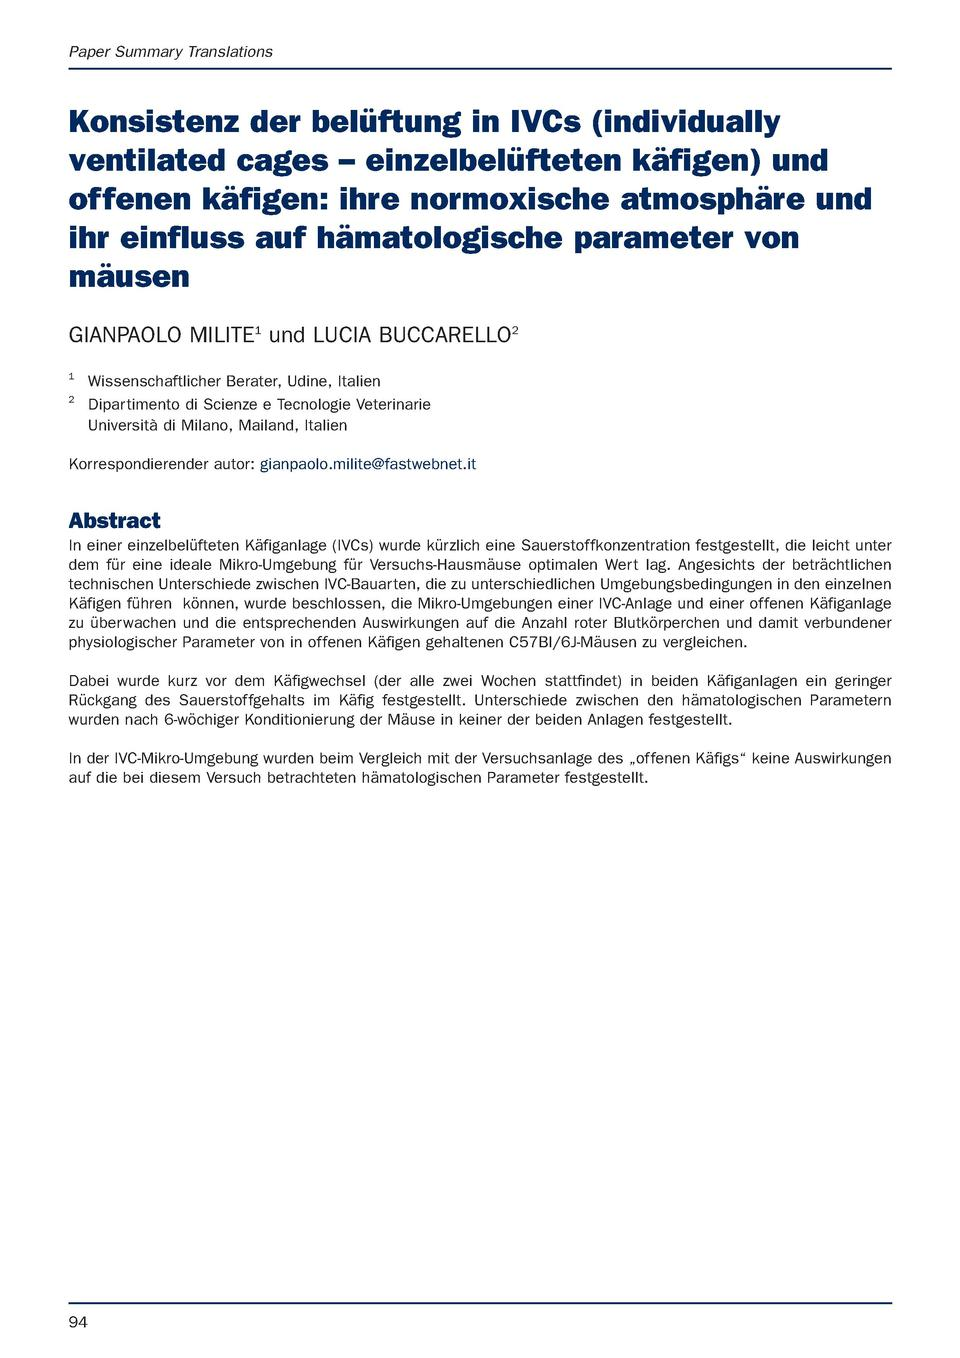 Paper Summary Translations  Konsistenz der bel  ftung in IVCs  individually ventilated cages     einzelbel  fteten k  fige...